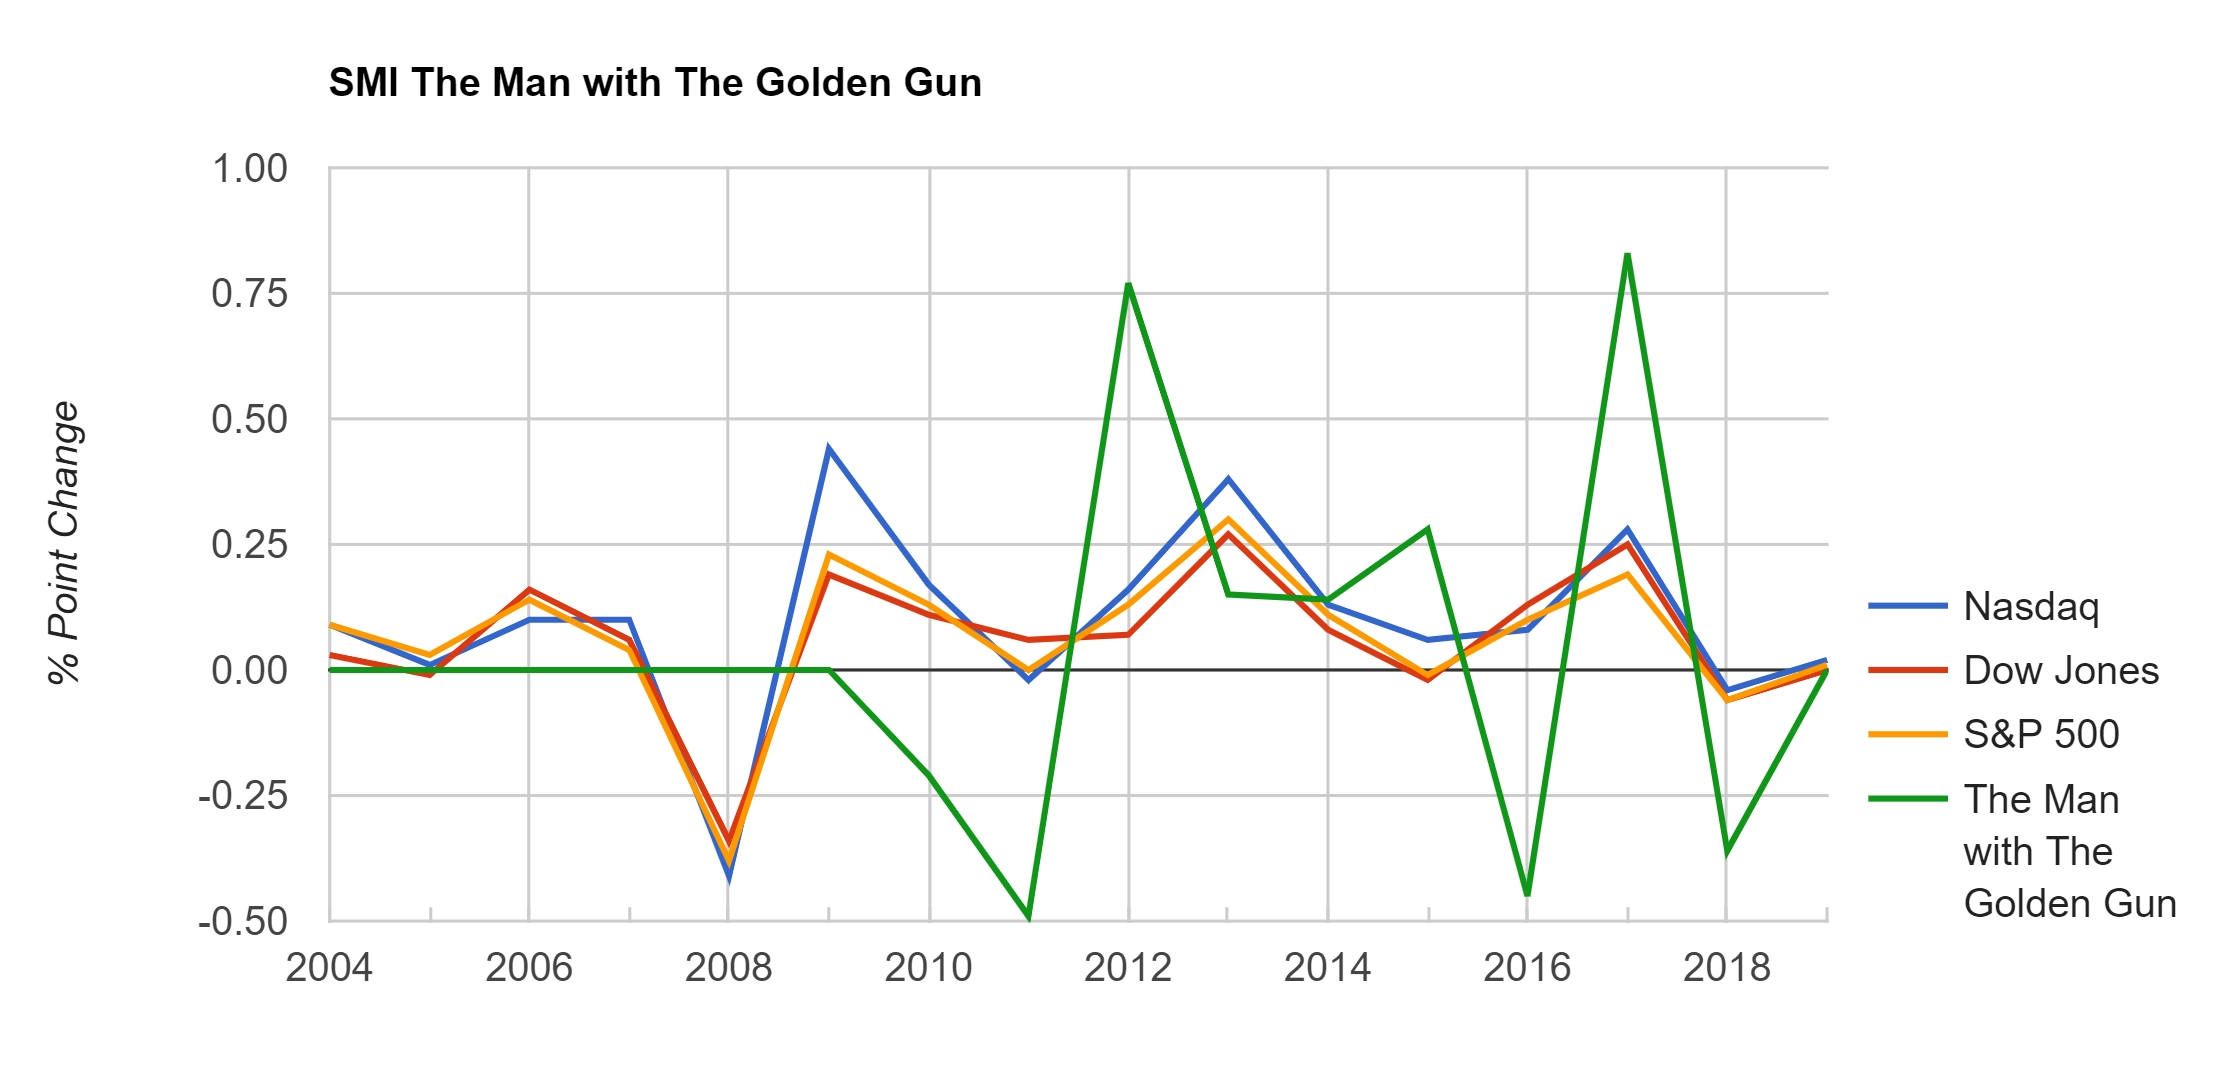 Stock Market Comparison : The Man with the Golden Gun